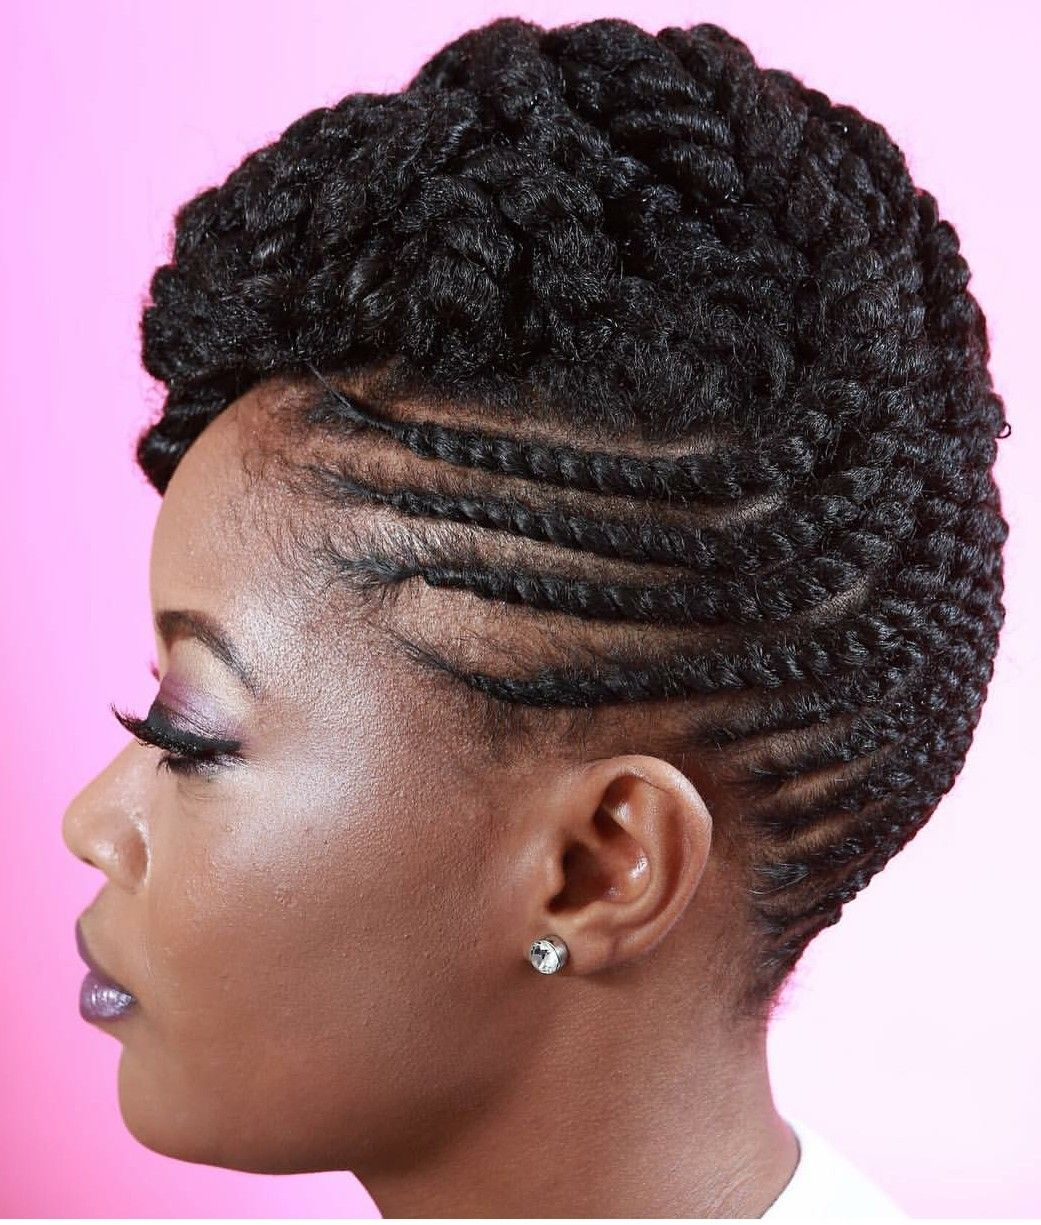 classic updo | hairstyles in 2019 | natural hair updo, short